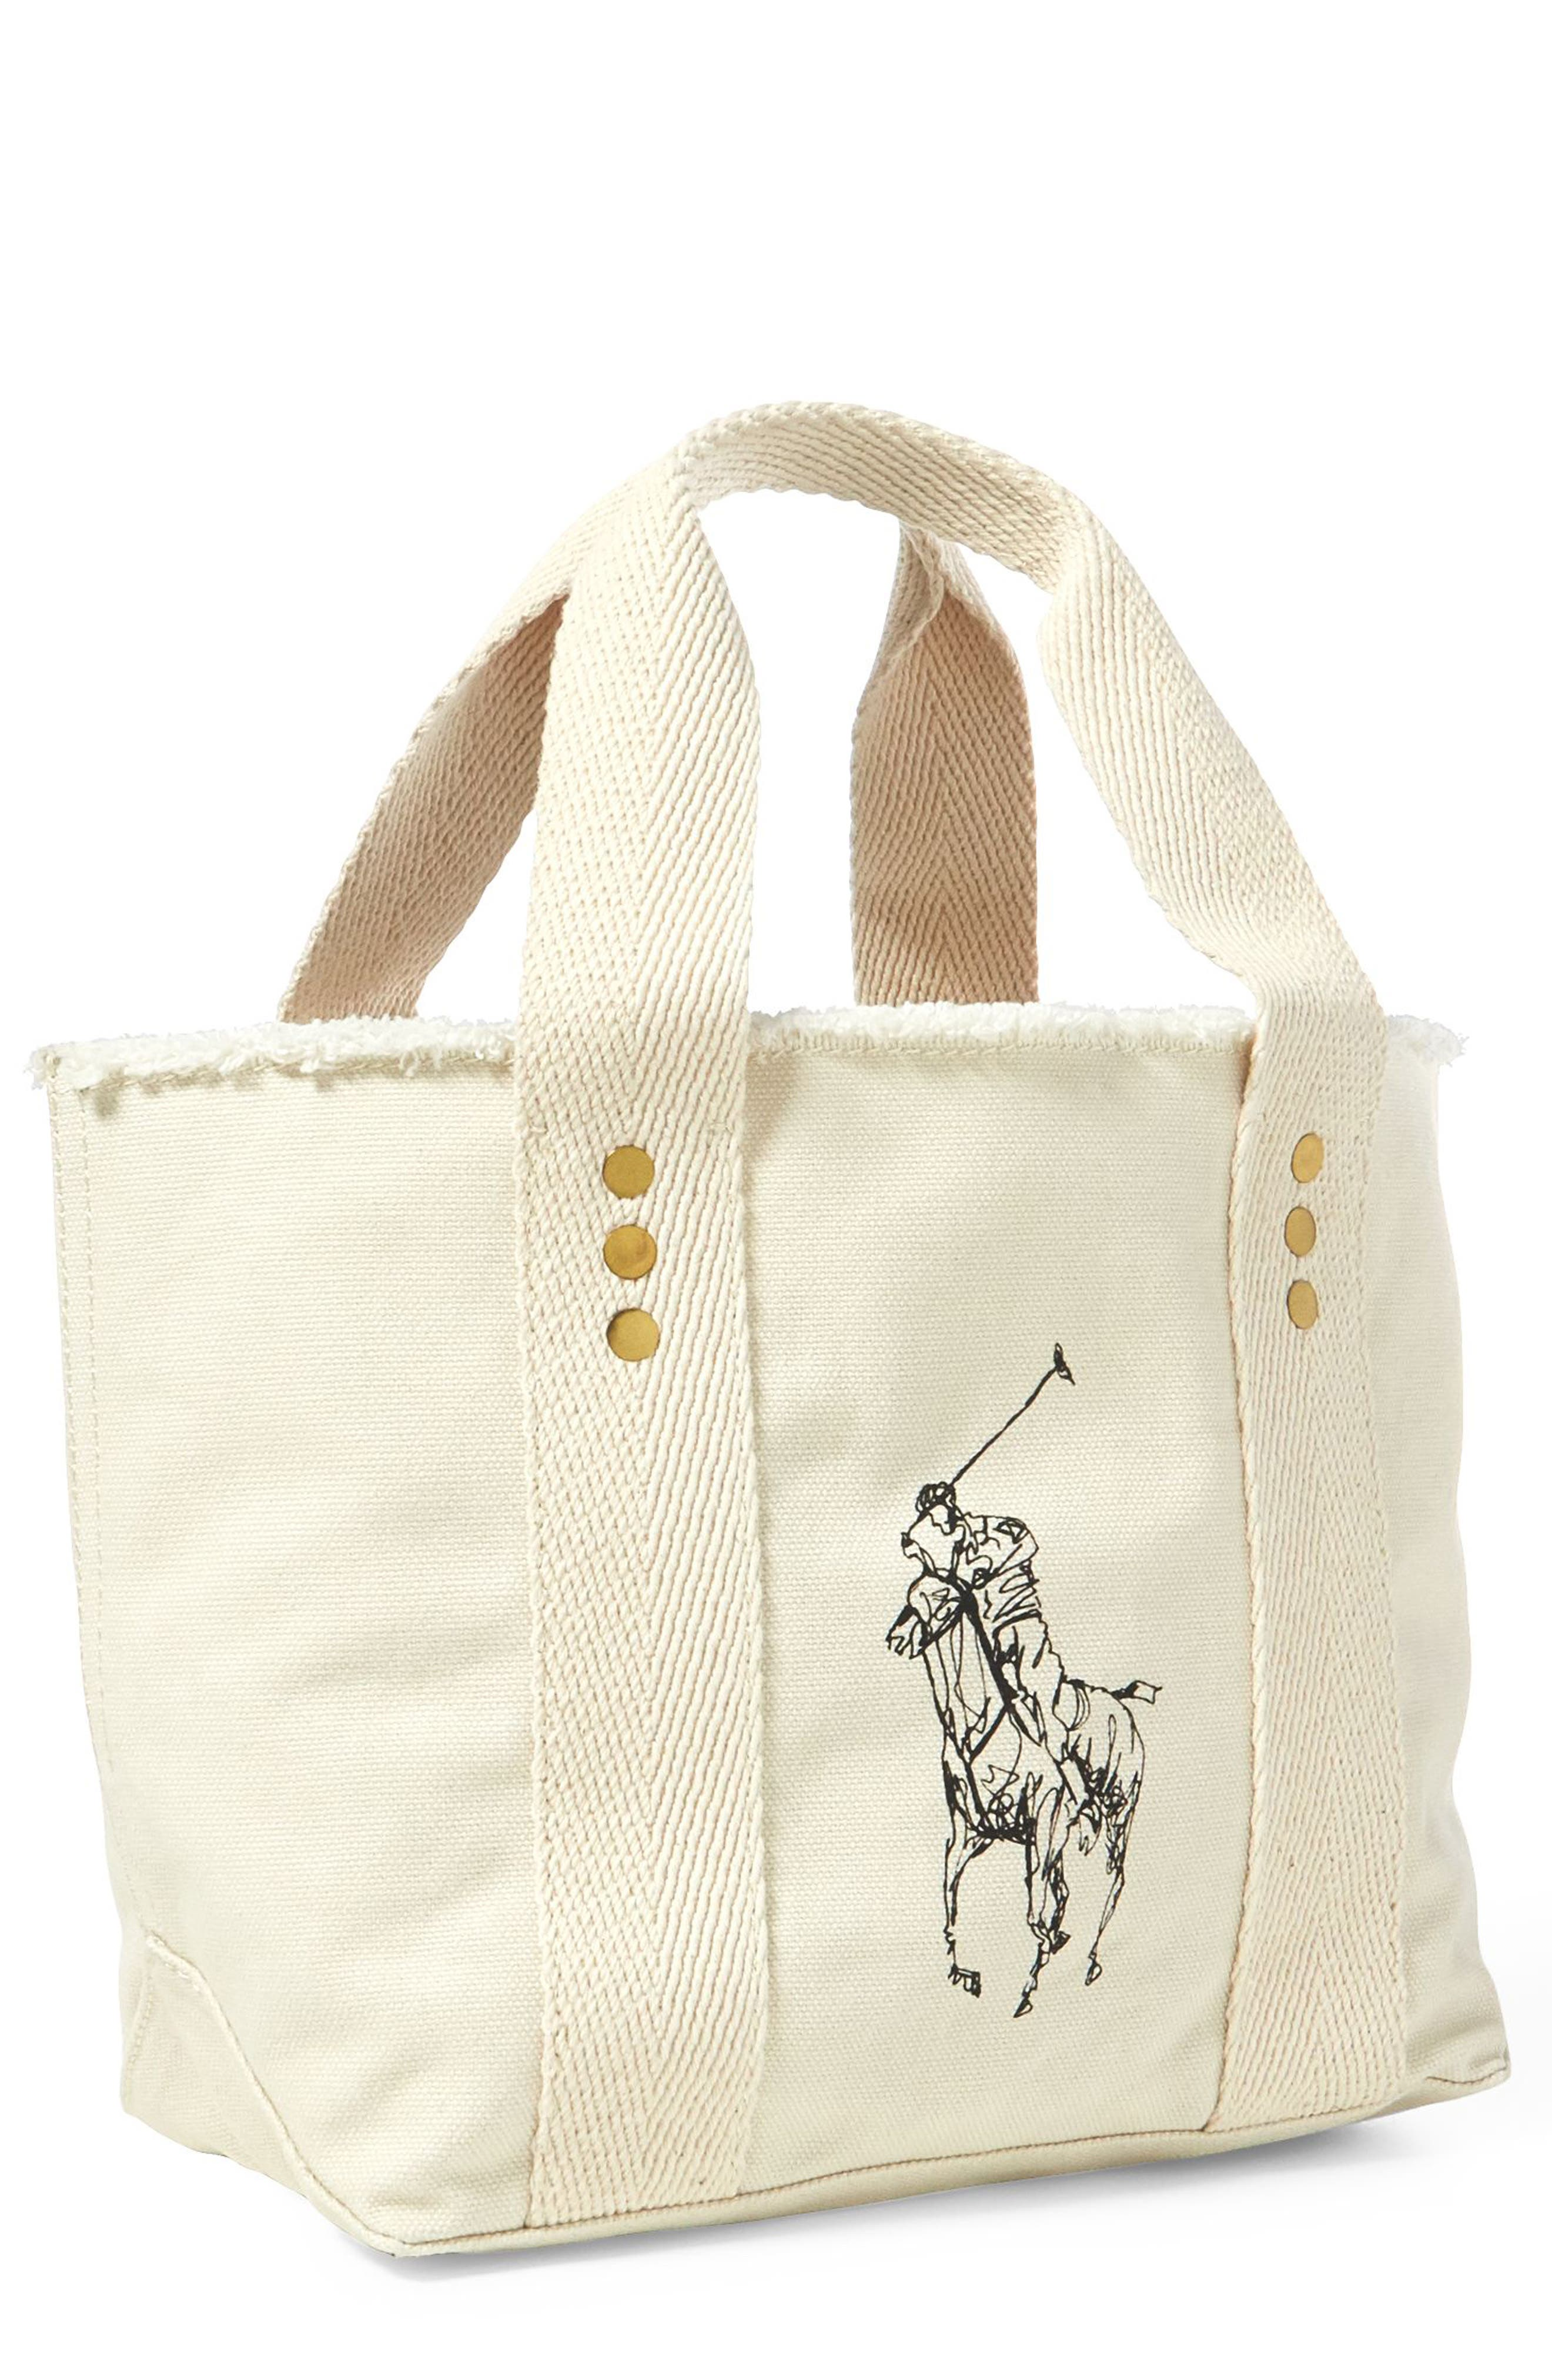 Polo Ralph Lauren Small Pony Canvas Tote